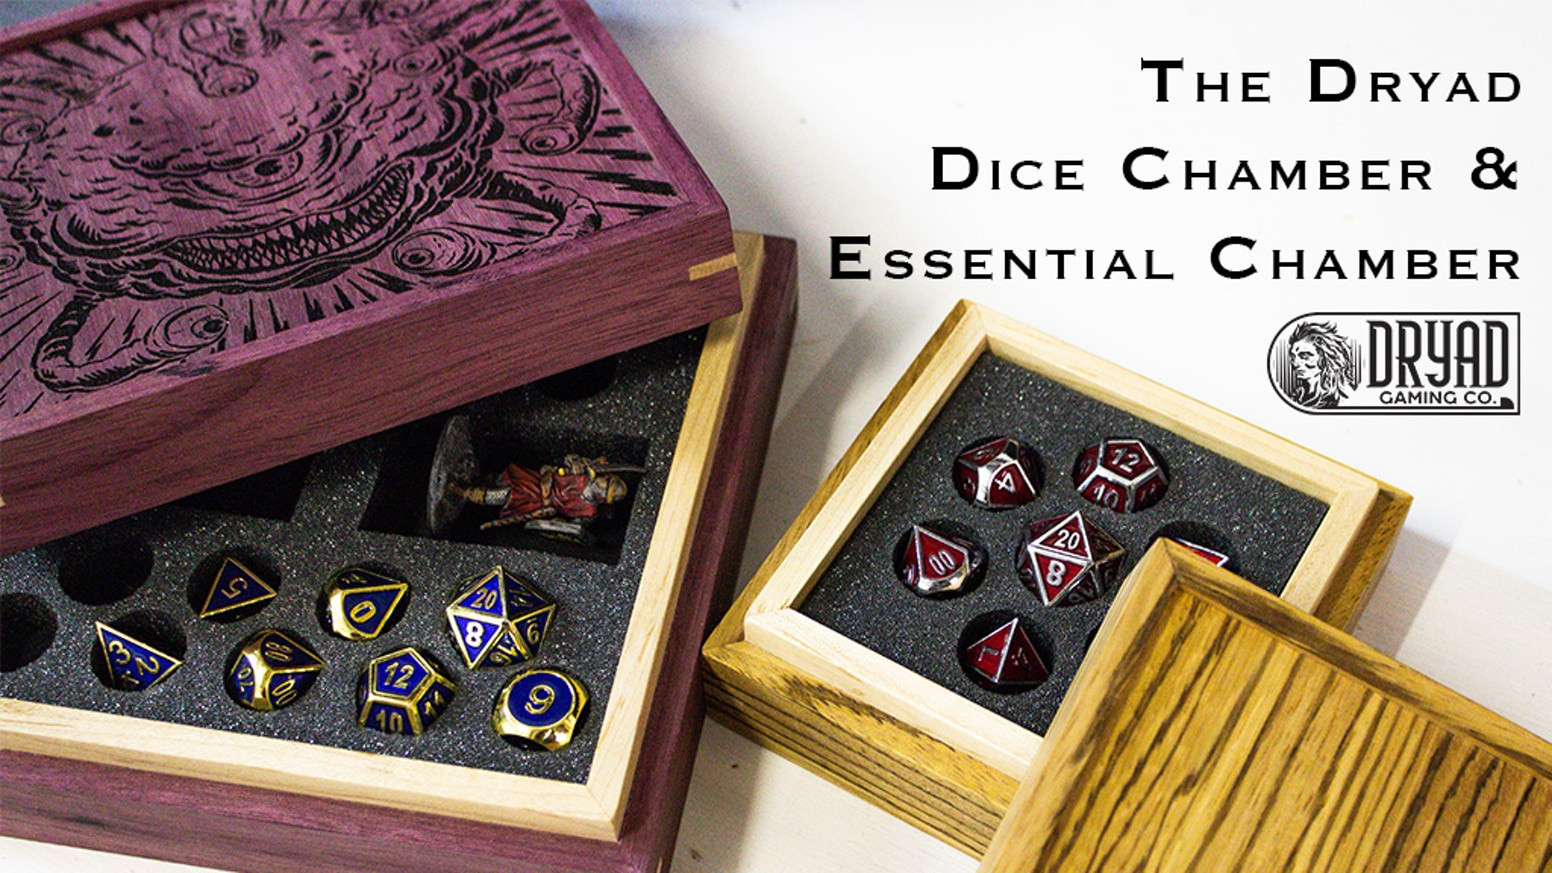 Two sizes of friction-lid boxes to store & transport your most crucial tabletop gaming gear. Each box is made from 14 amazing hardwoods